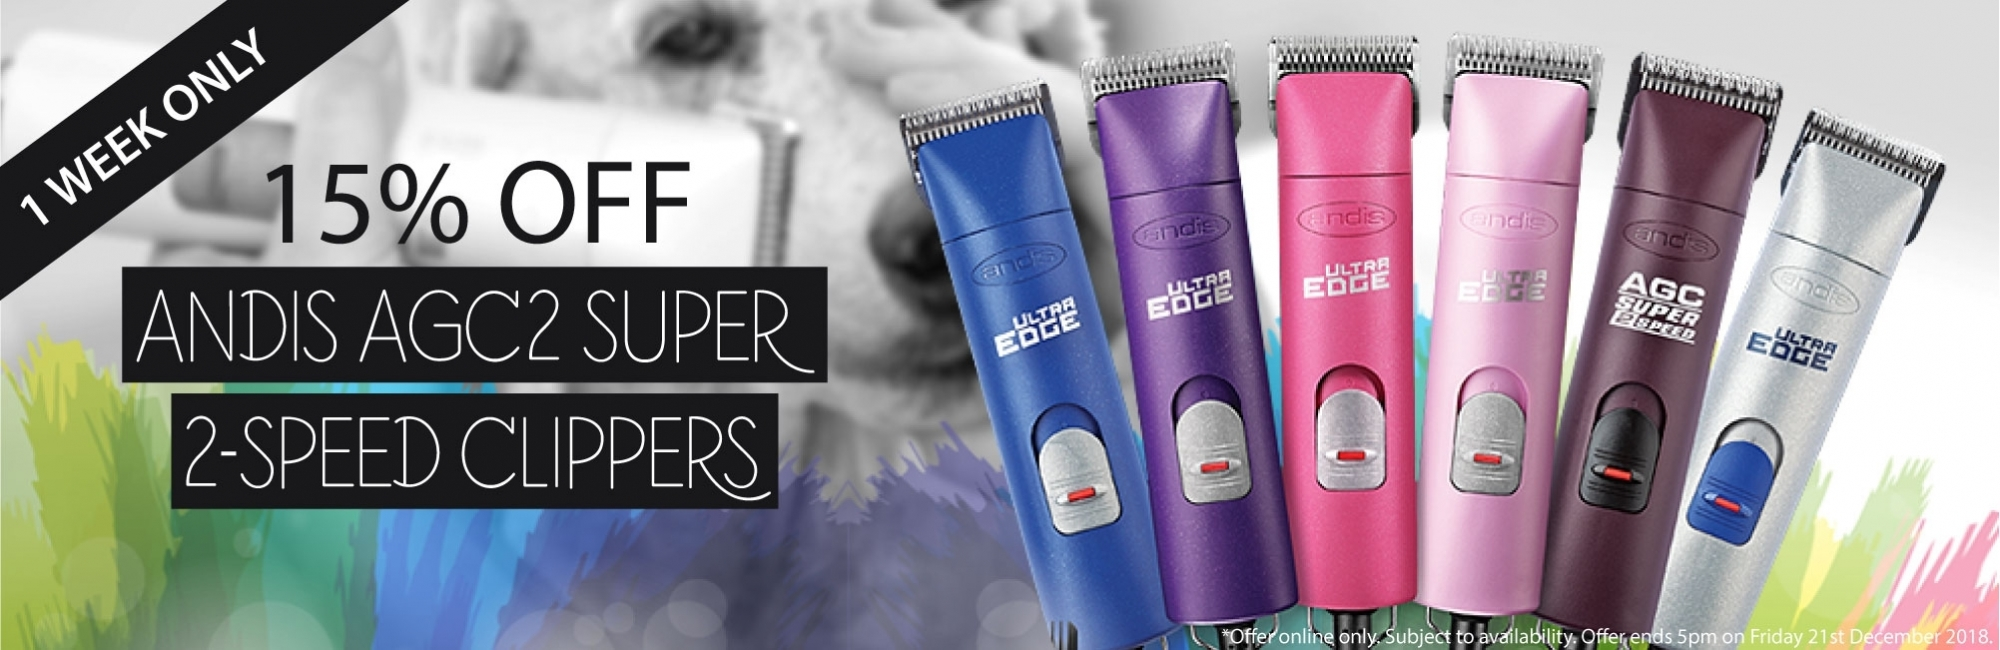 15% OFF ANDIS AGC2 SUPER 2-SPEED CLIPPERS